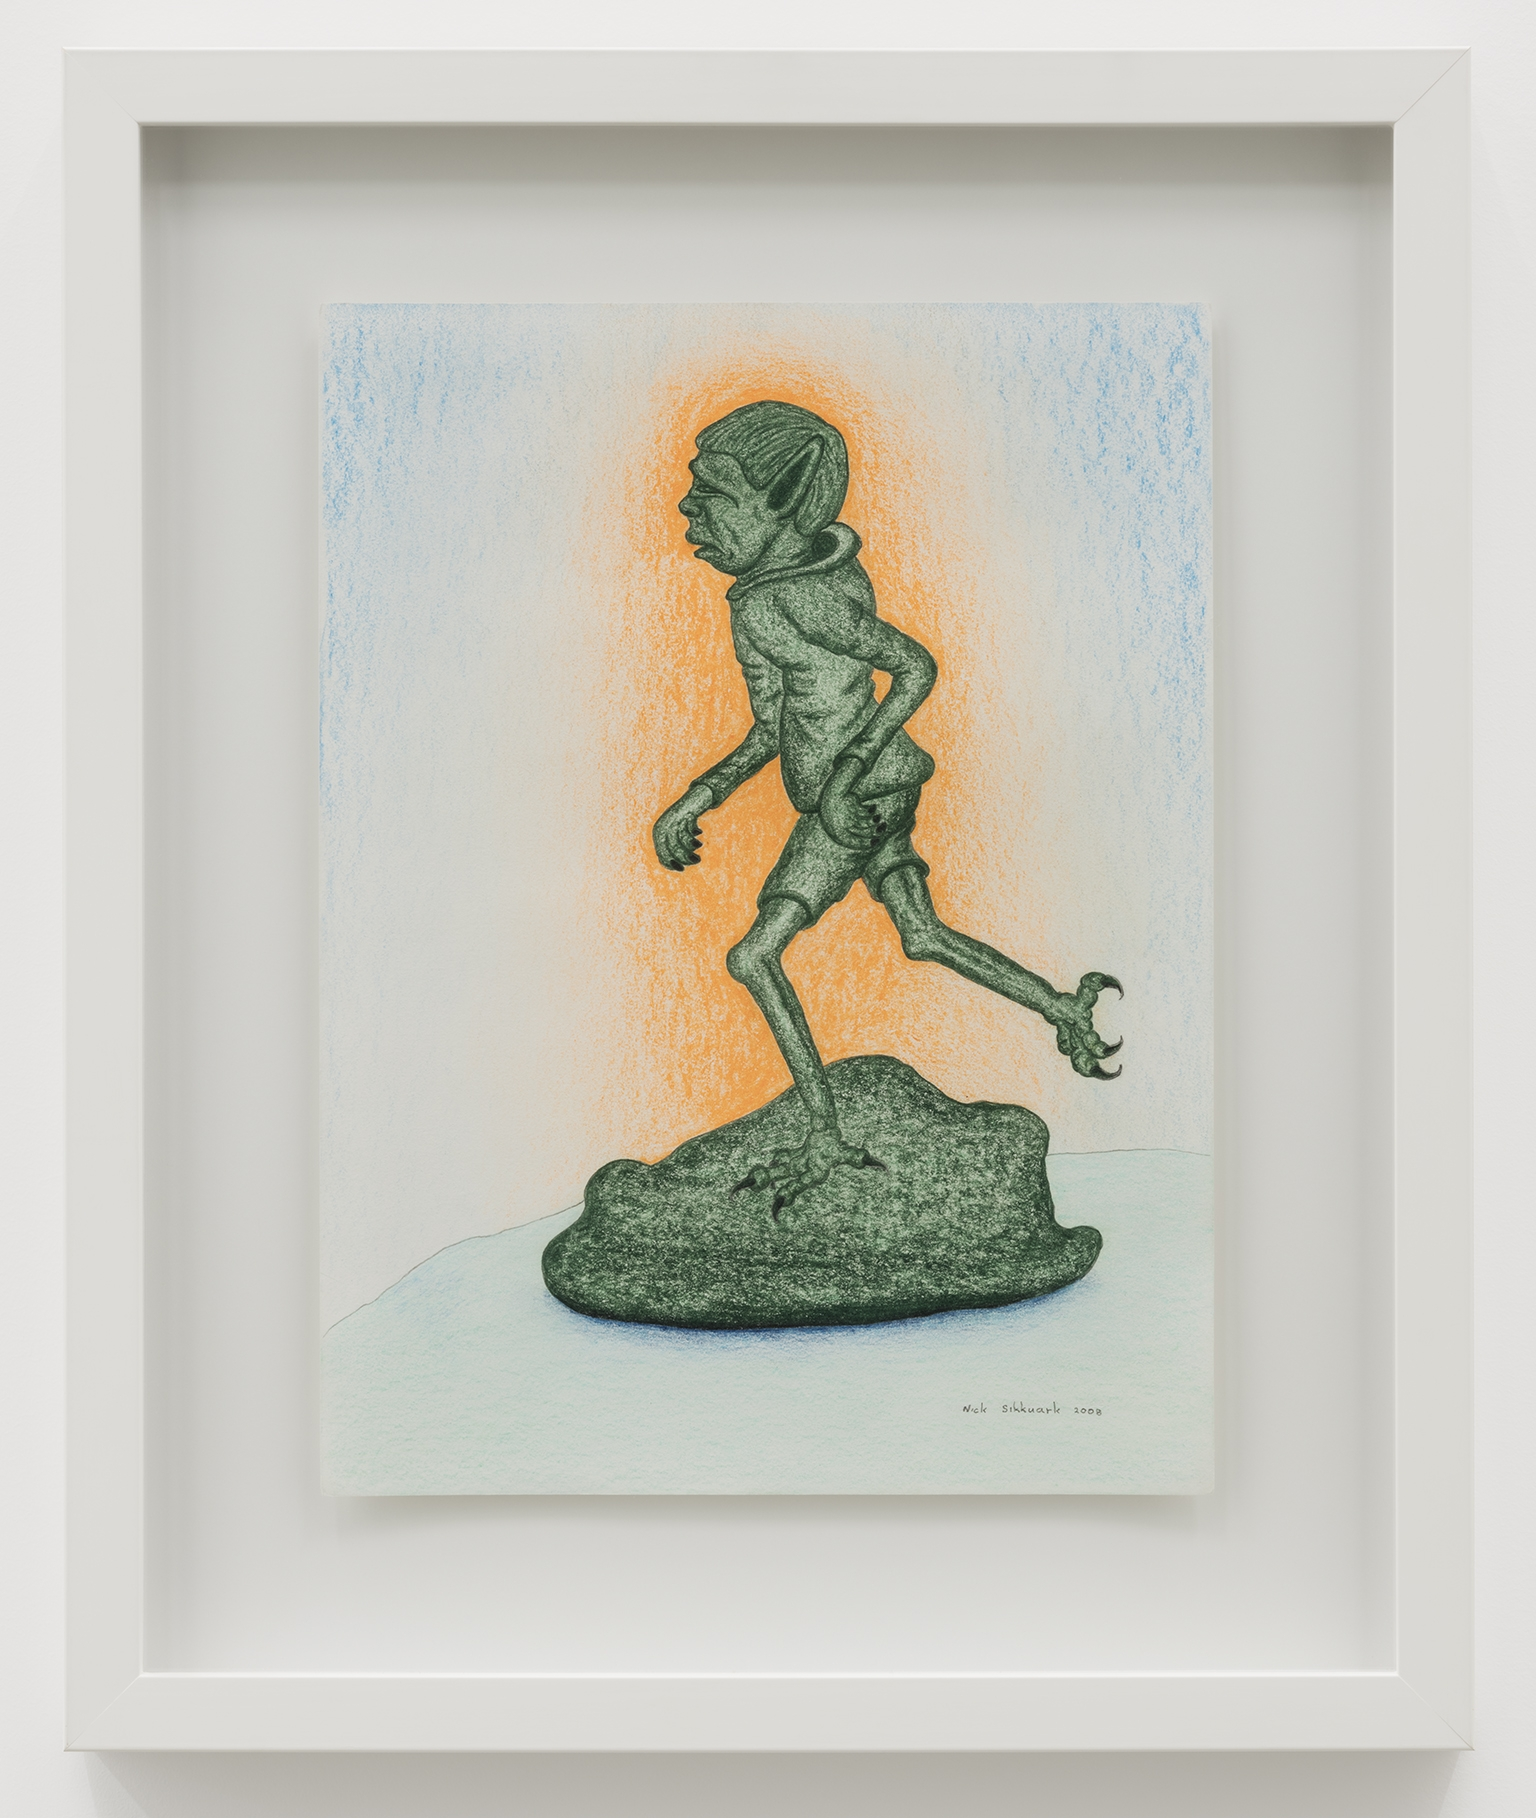 Nick Sikkuark, untitled (running spirit), 2008, coloured pencil on paper, 16 x 12 in. (41 x 29 cm) by